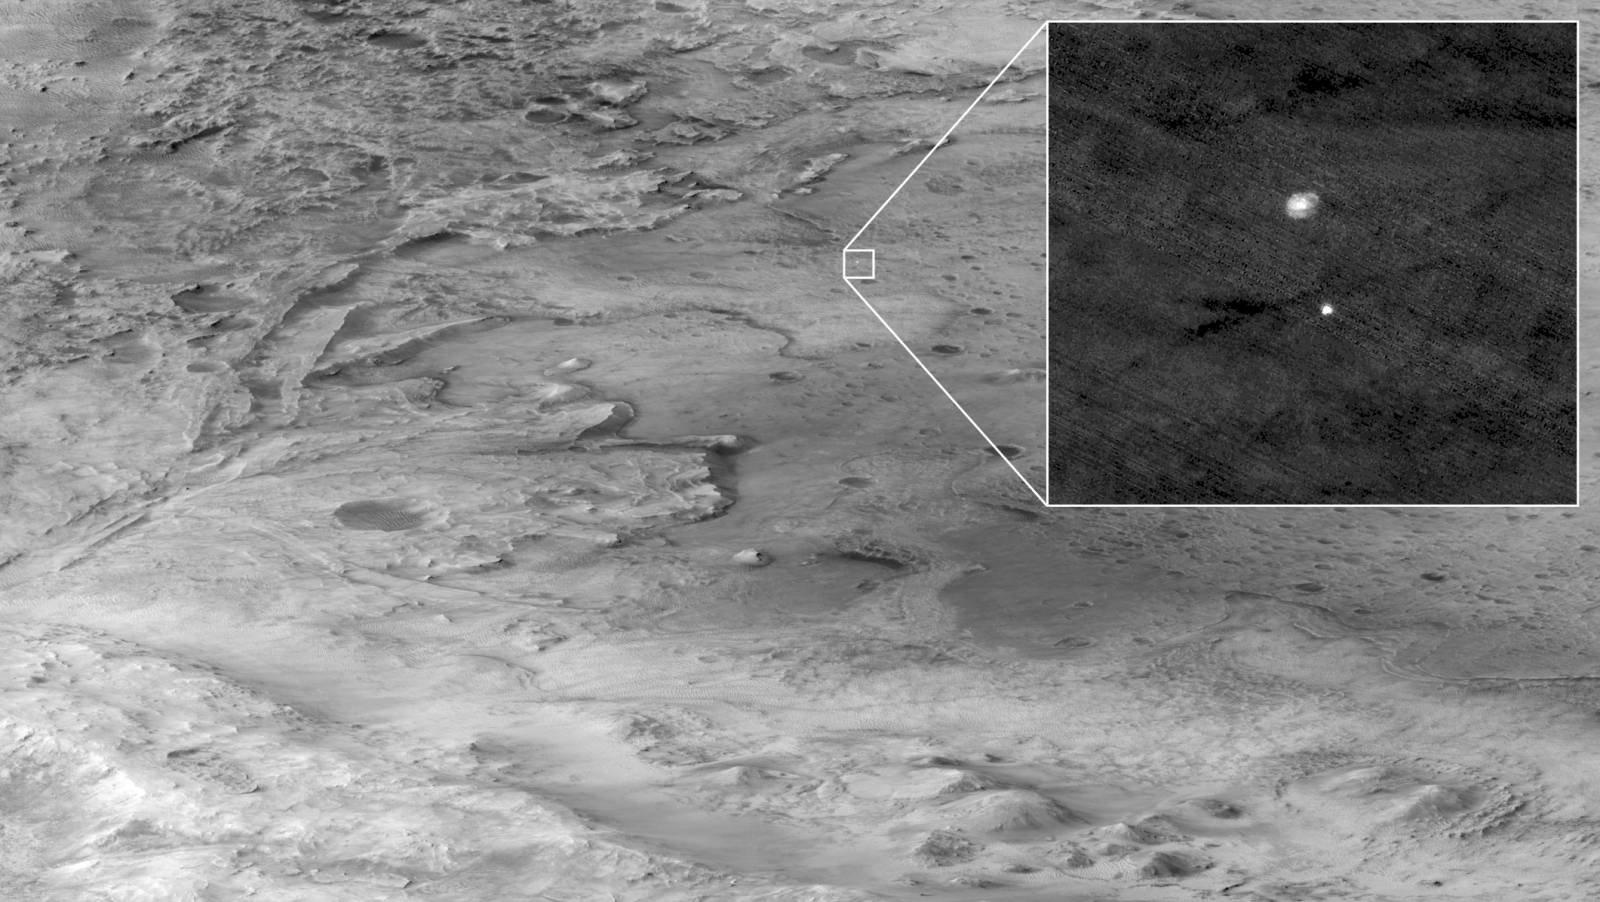 The descent stage holding NASA's Perseverance rover can be seen falling through the Martian atmosphere